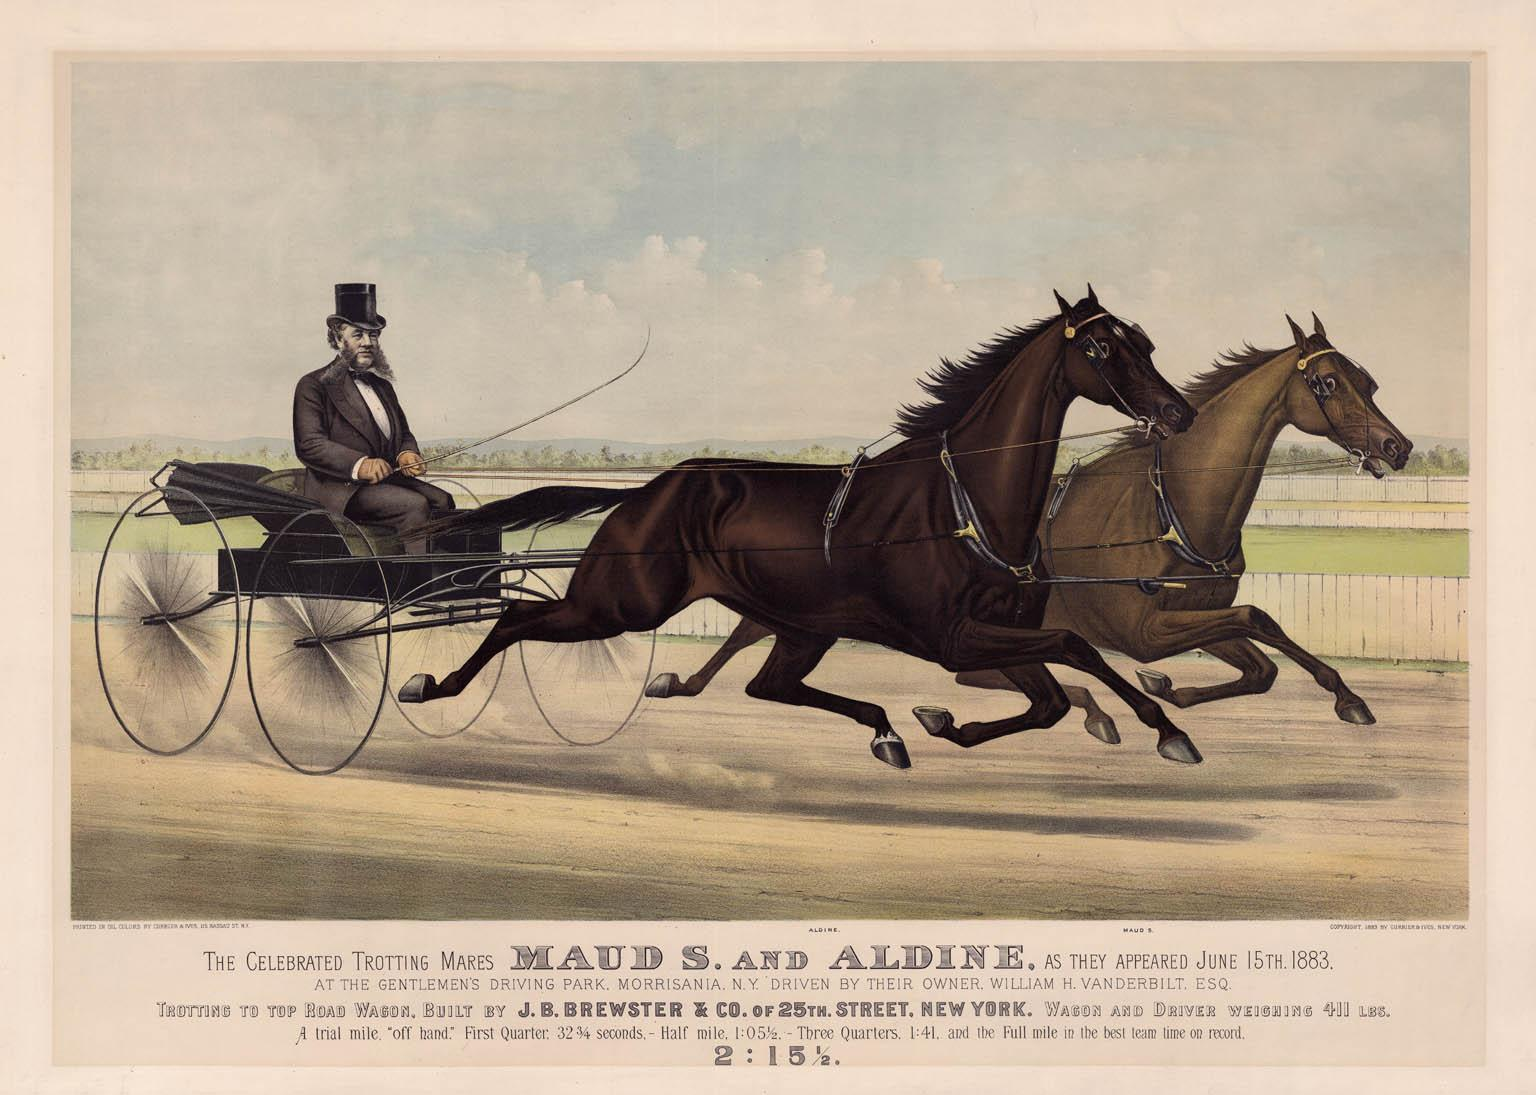 The Celebrated Trotting Mares Maud S. and Aldine...